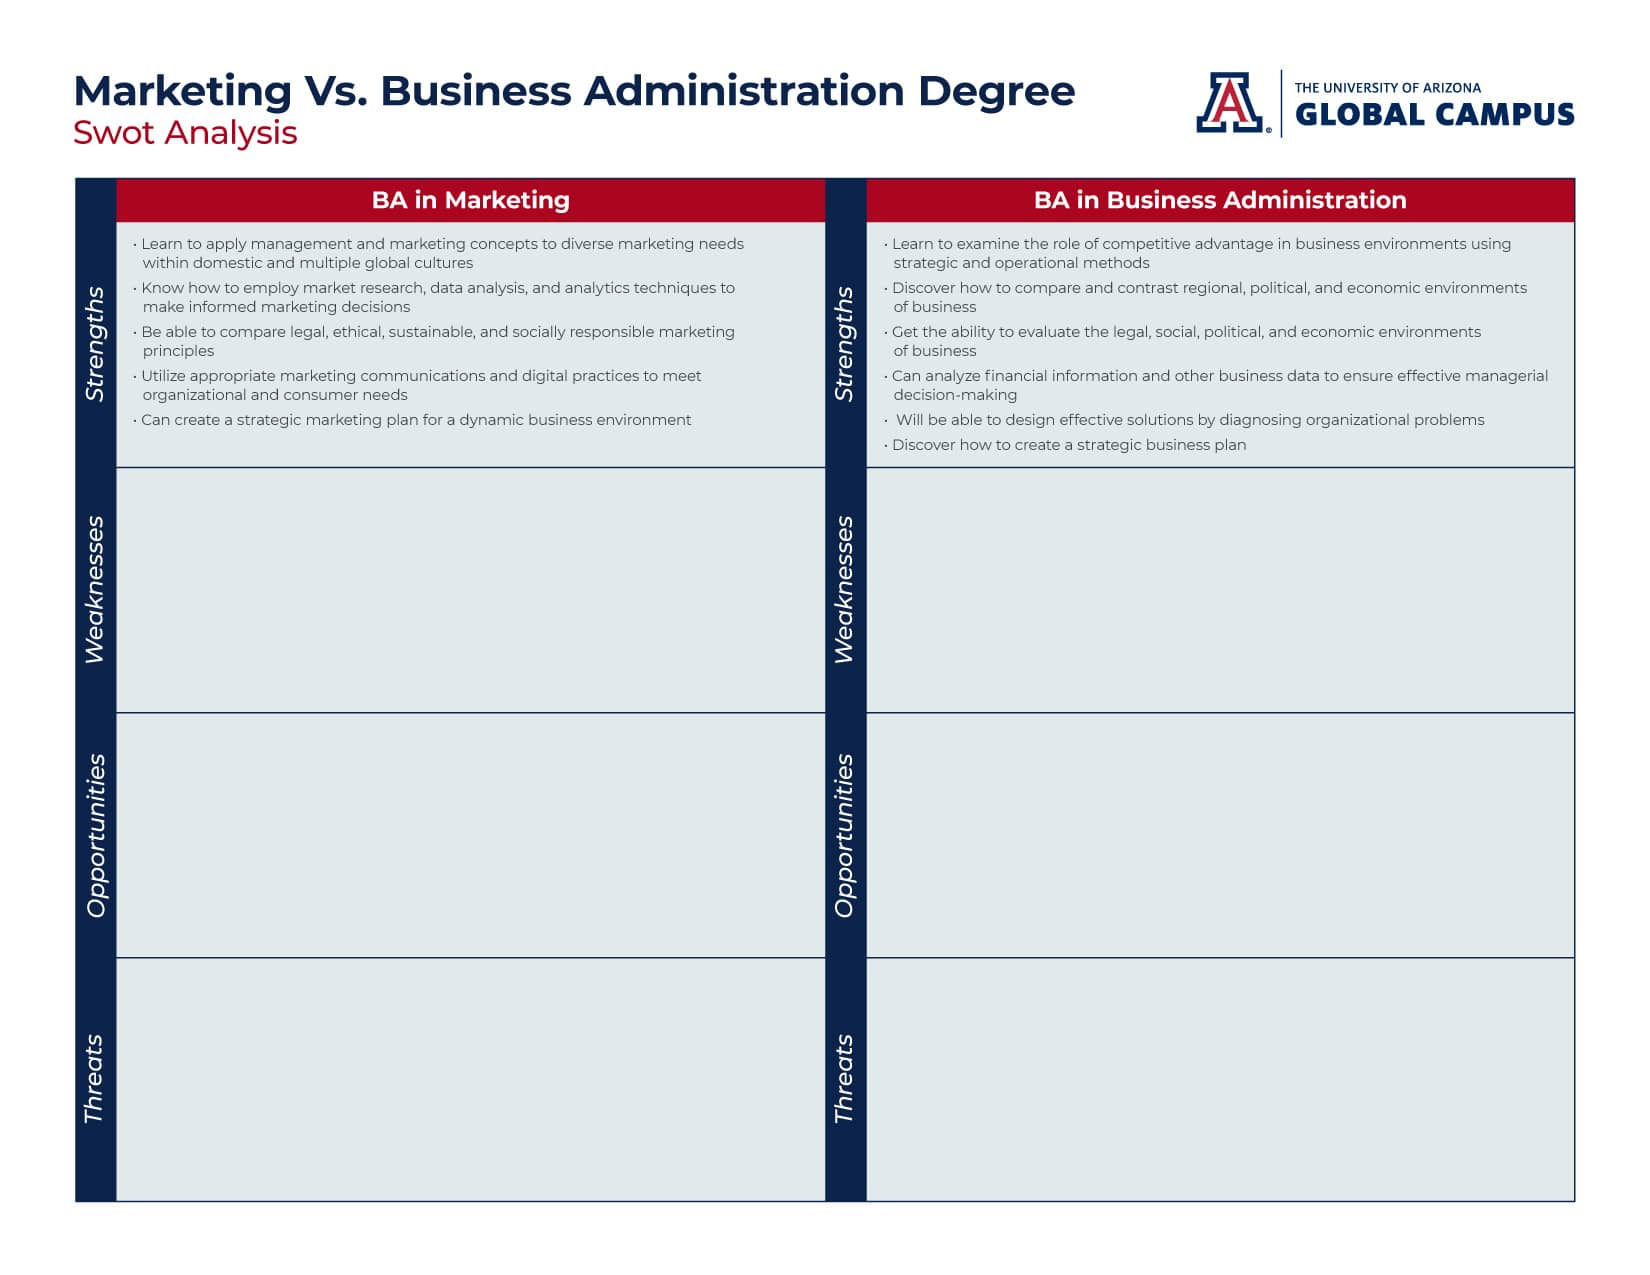 ba marketing vs ba business administration swot analysis